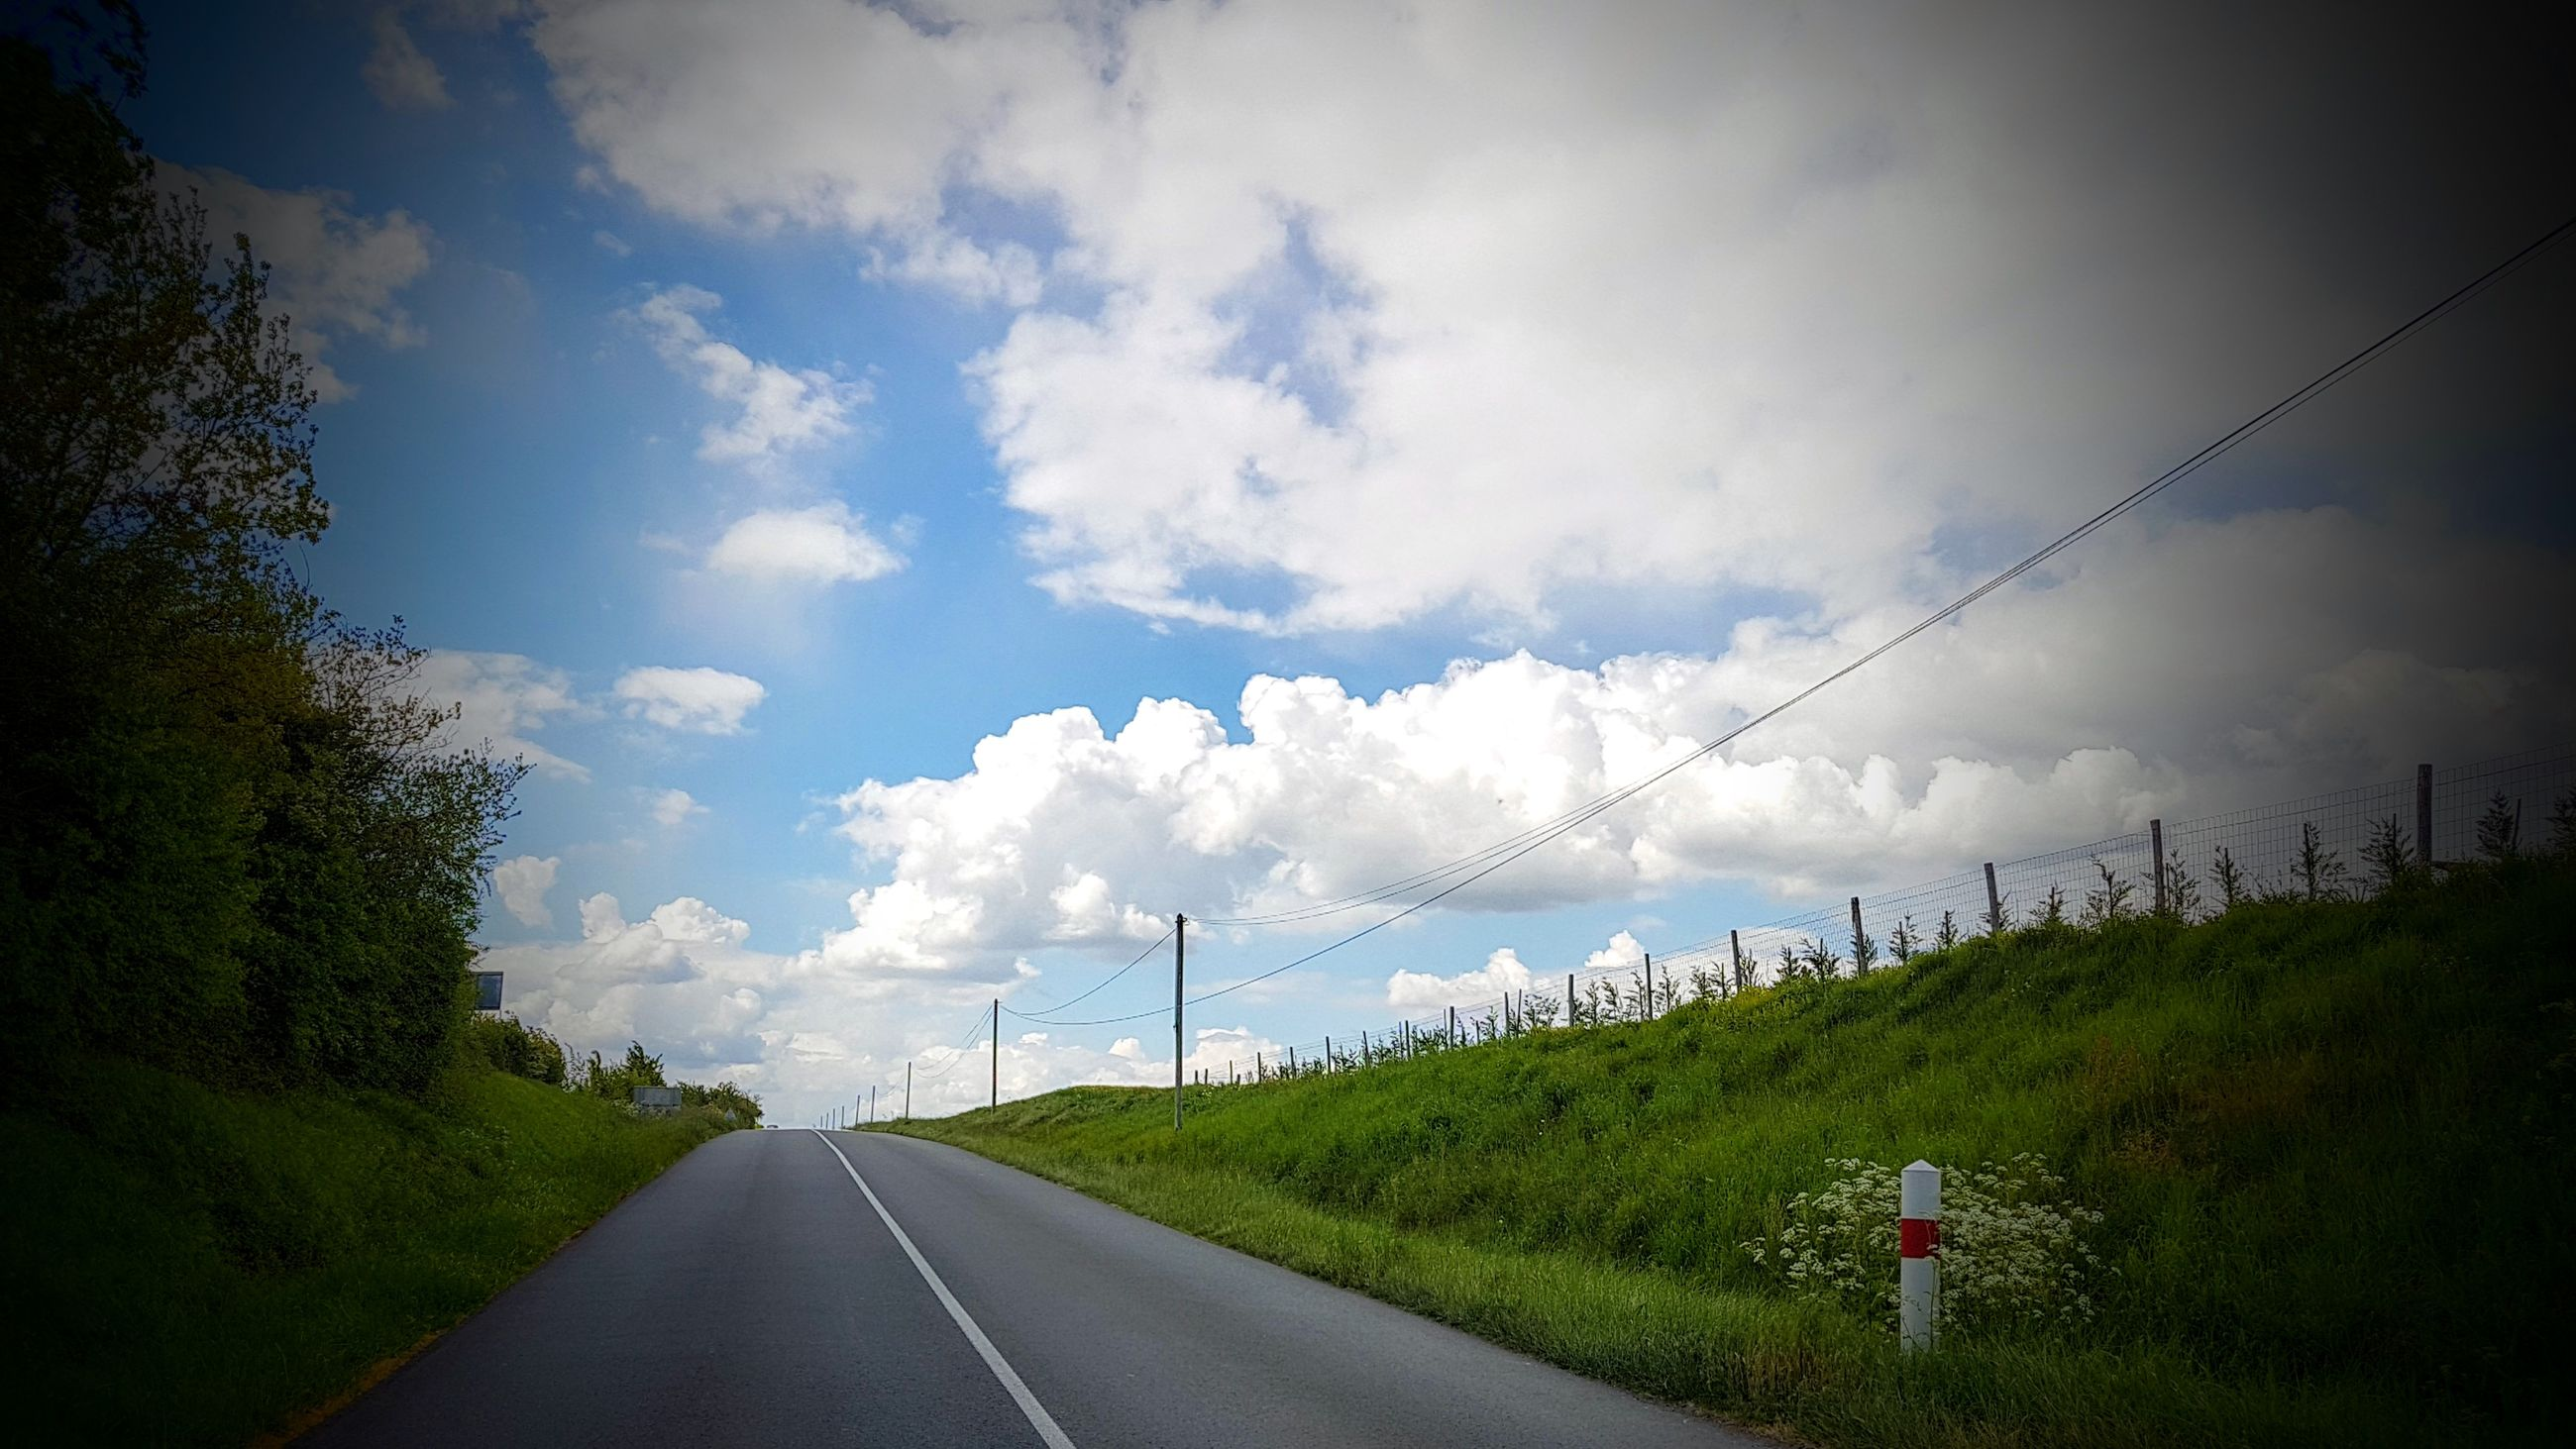 road, transportation, the way forward, sky, cloud - sky, empty road, asphalt, no people, nature, day, outdoors, tree, landscape, electricity pylon, telephone line, beauty in nature